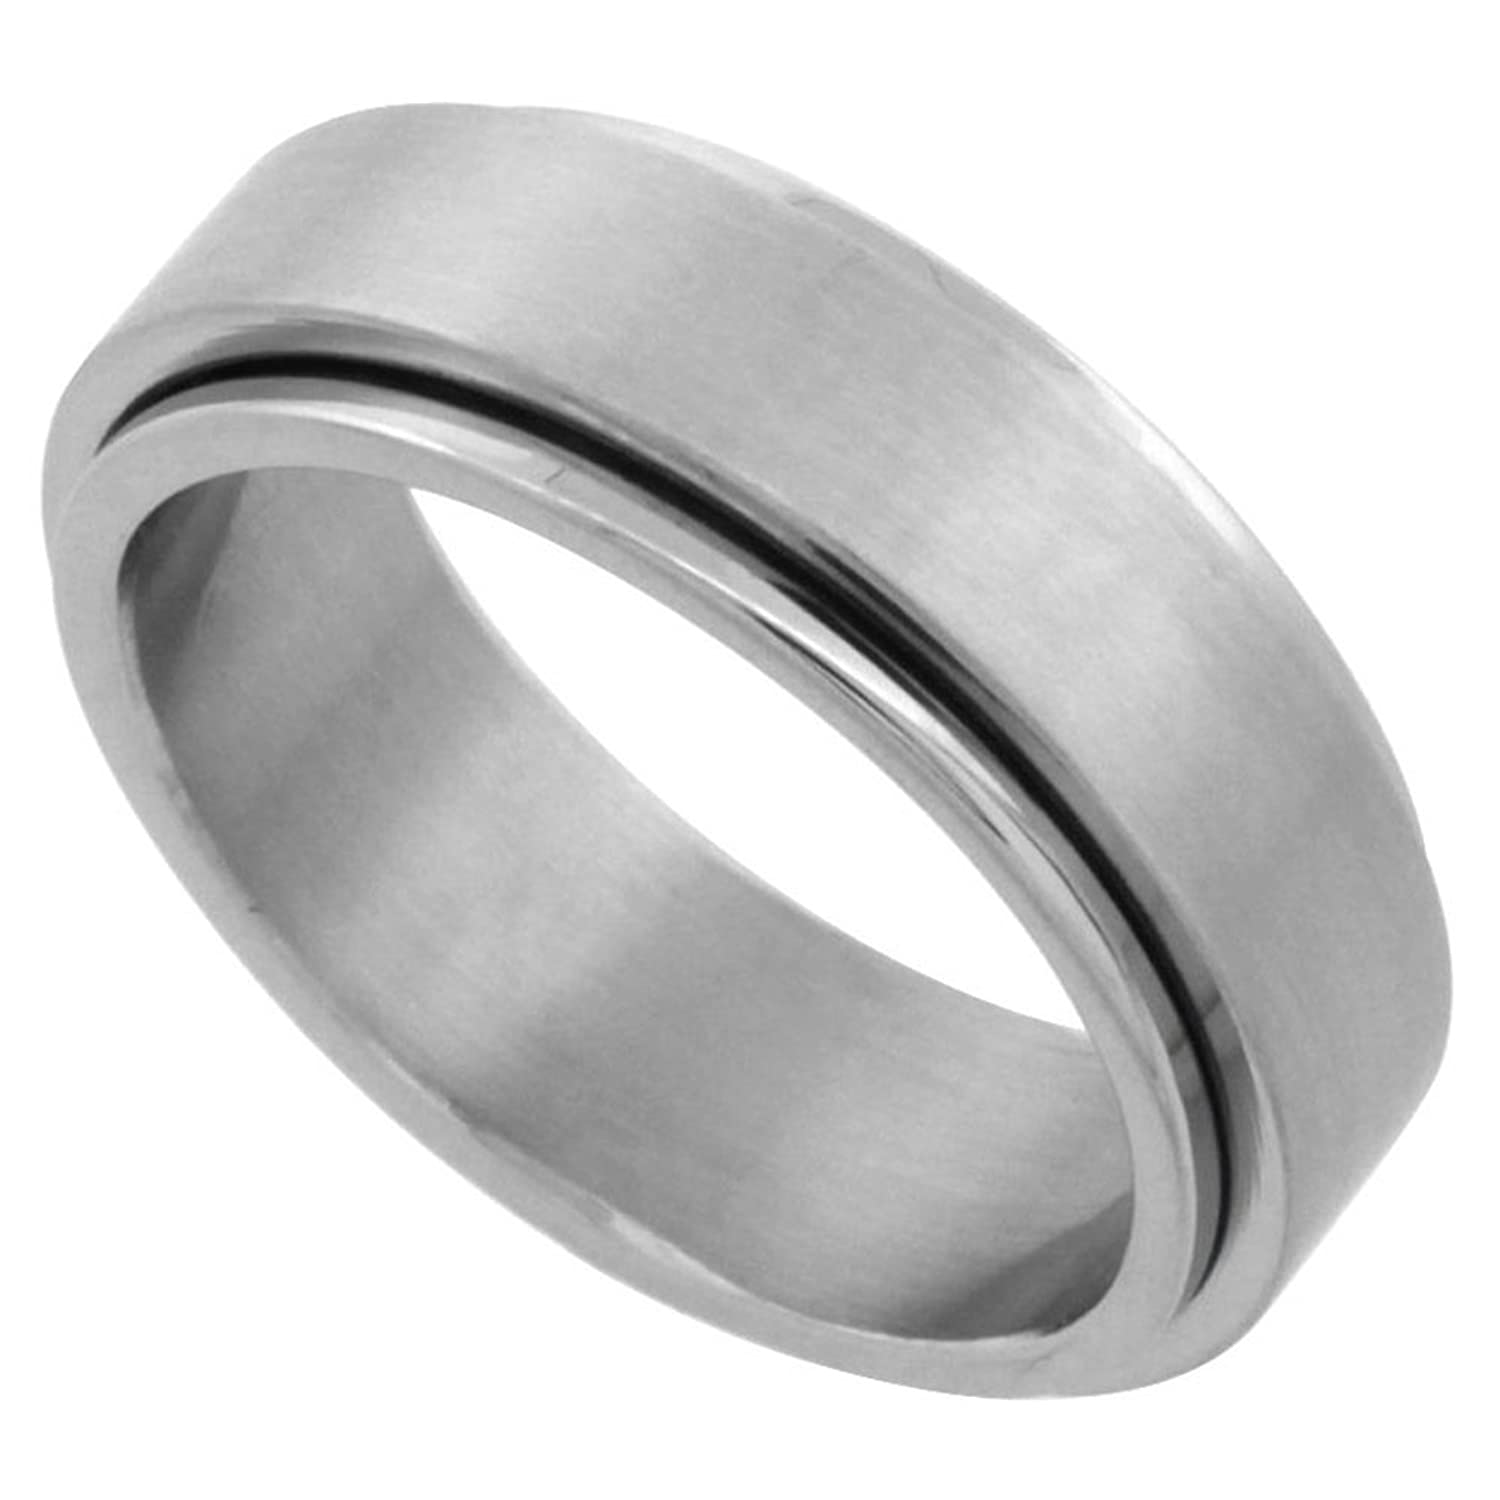 Surgical Stainless Steel 7mm Spinner Ring Wedding Band Matte Finish